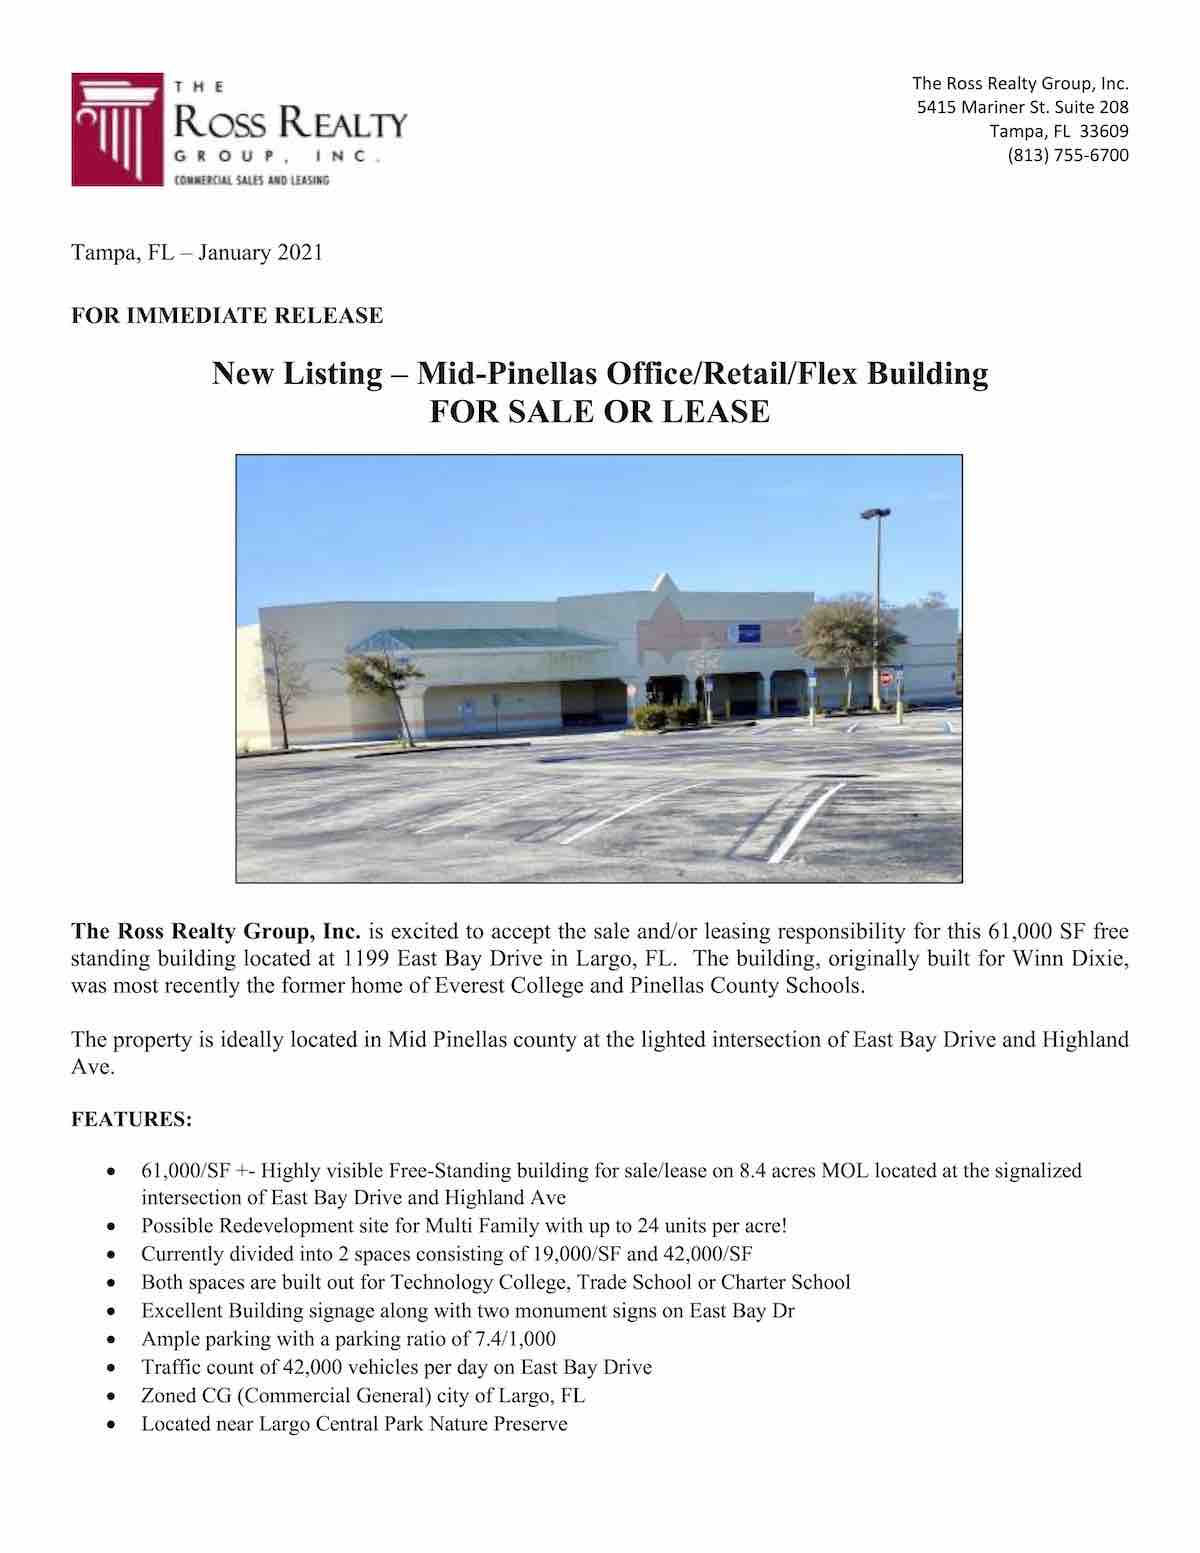 Tampa Commercial Real Estate - RRG-NewListingPR - 1199 East Bay Drive in Largo, FL 1-21 P1